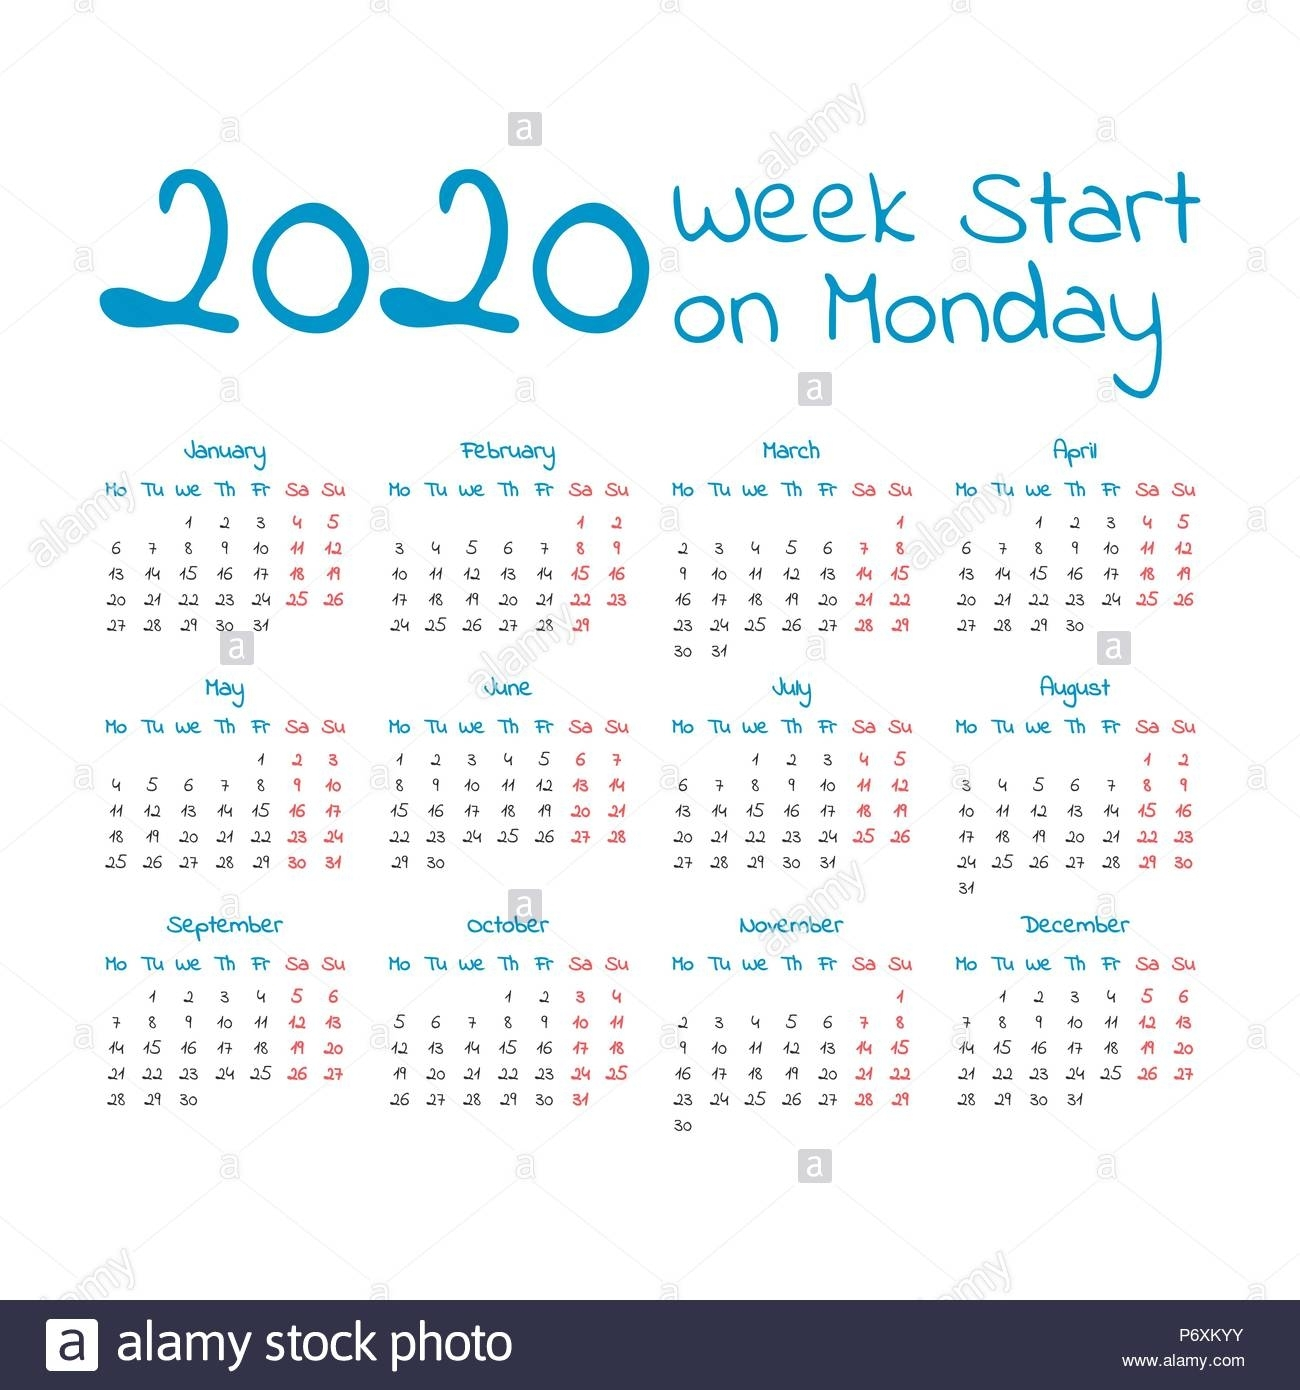 Monday Start Calendar 2020 - Colona.rsd7 pertaining to 2020 Calendars With Week Starting Mondays